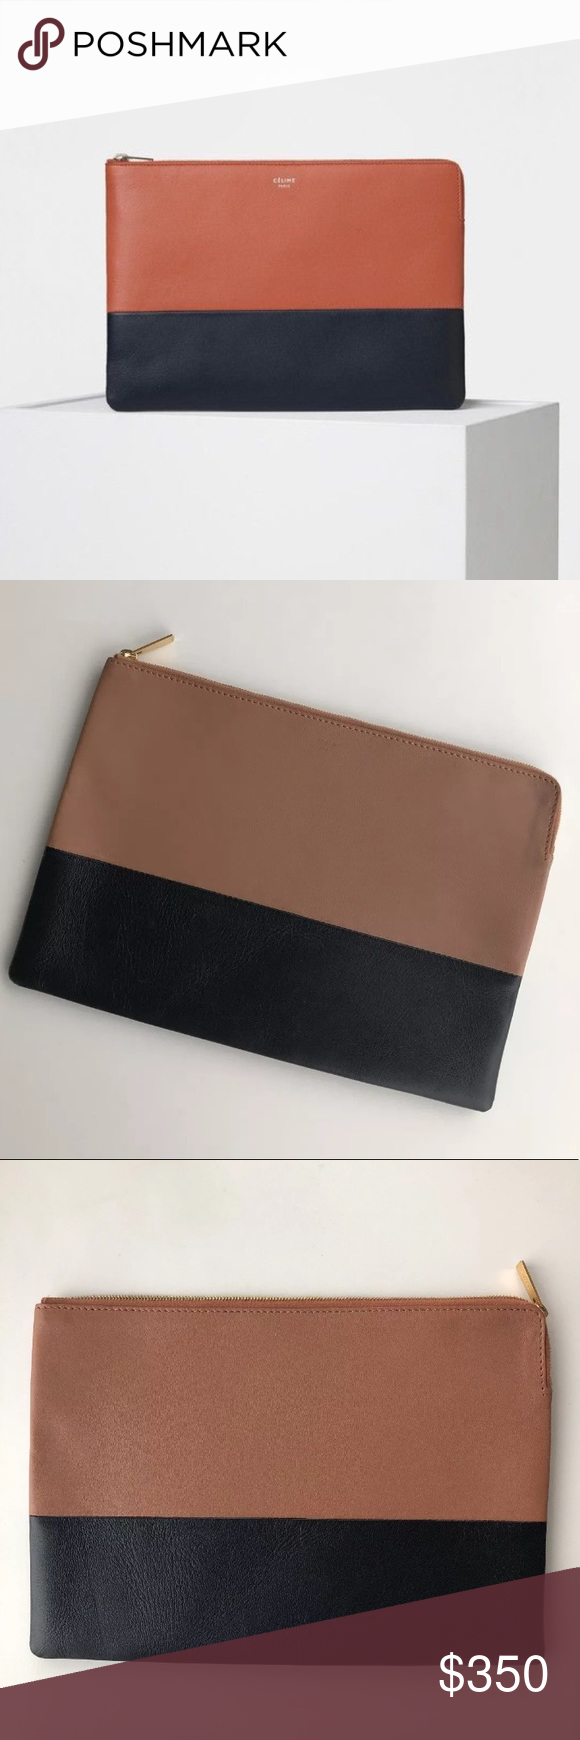 ccbd23ef83 Auth New Celine Bi-color Solo Clutch Pouch Leather New without tags and  authentic CELINE Lambskin Bicolor Solo Clutch Pouch Black and Brown.